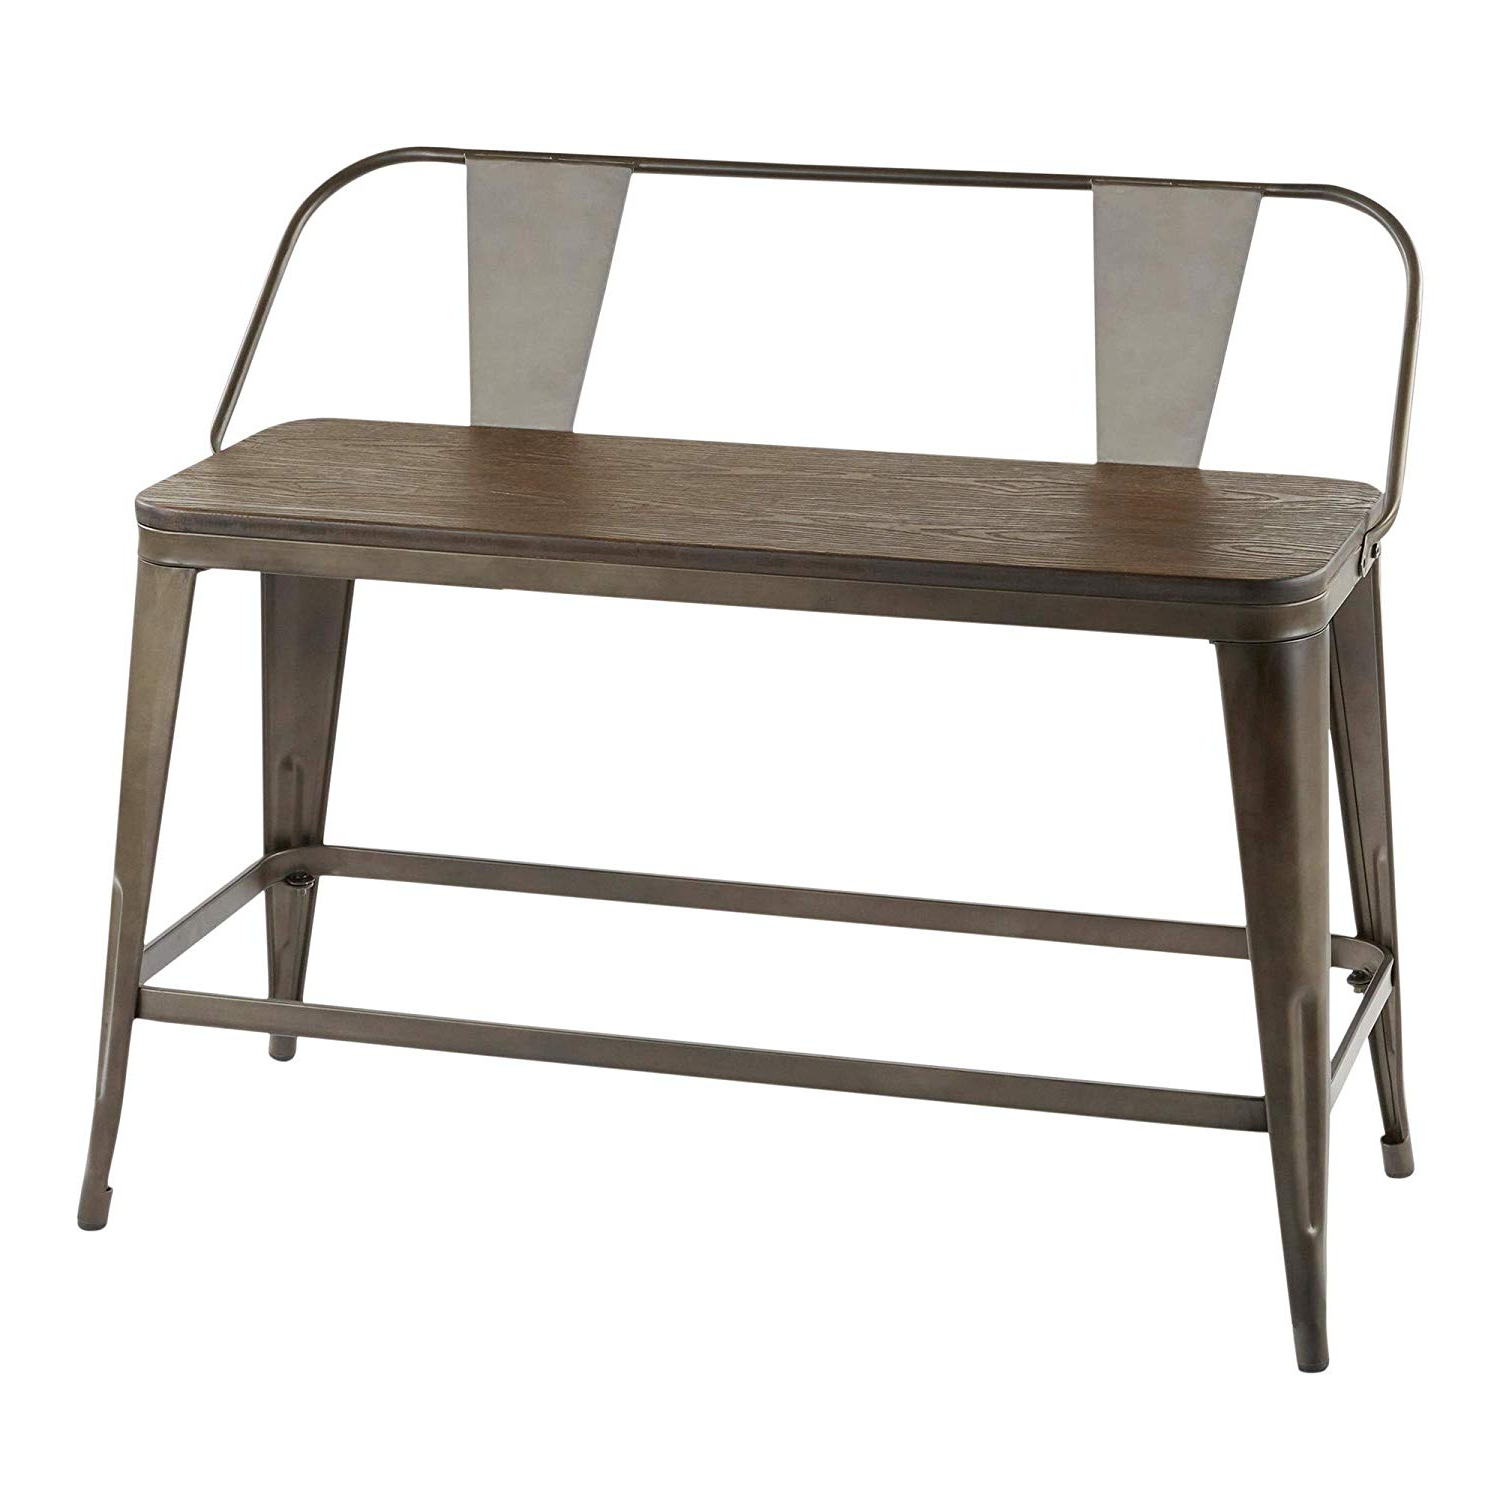 Amazon: Lumisource Counter Bench In Antique And Espresso Regarding Newest Vintage Cream Frame And Espresso Bamboo Dining Tables (View 3 of 25)